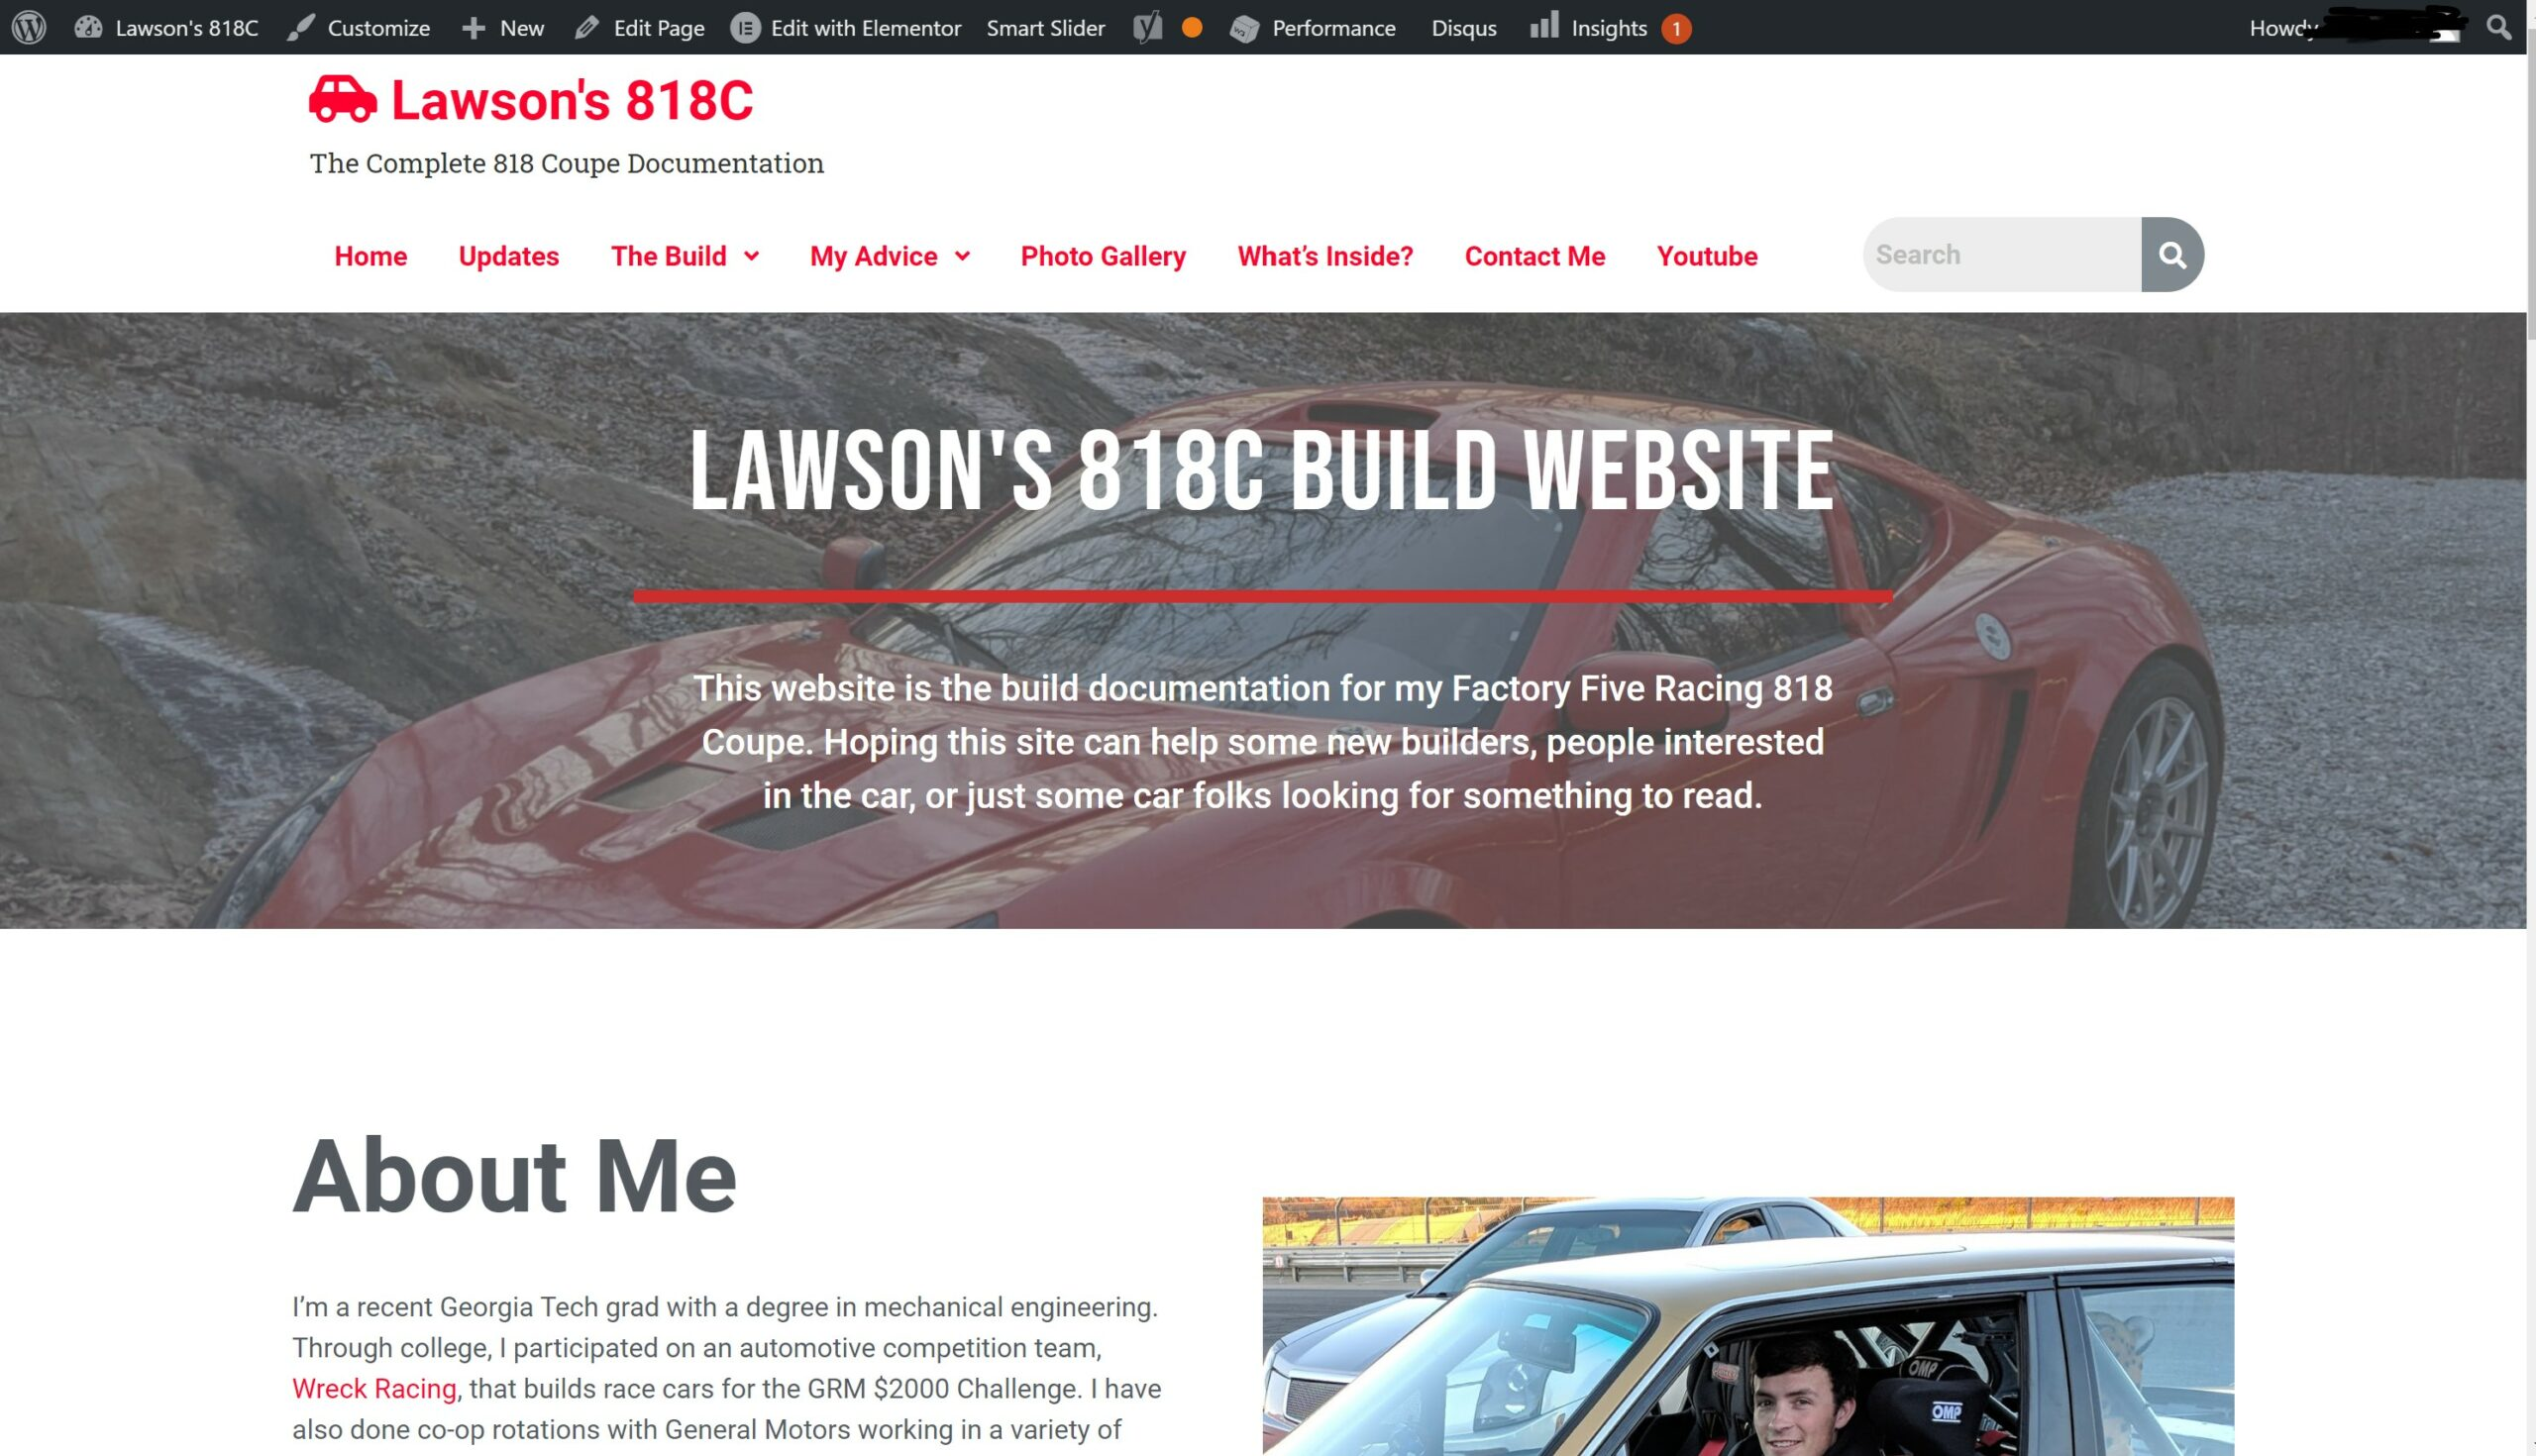 Version 2 of Lawson's 818C Website